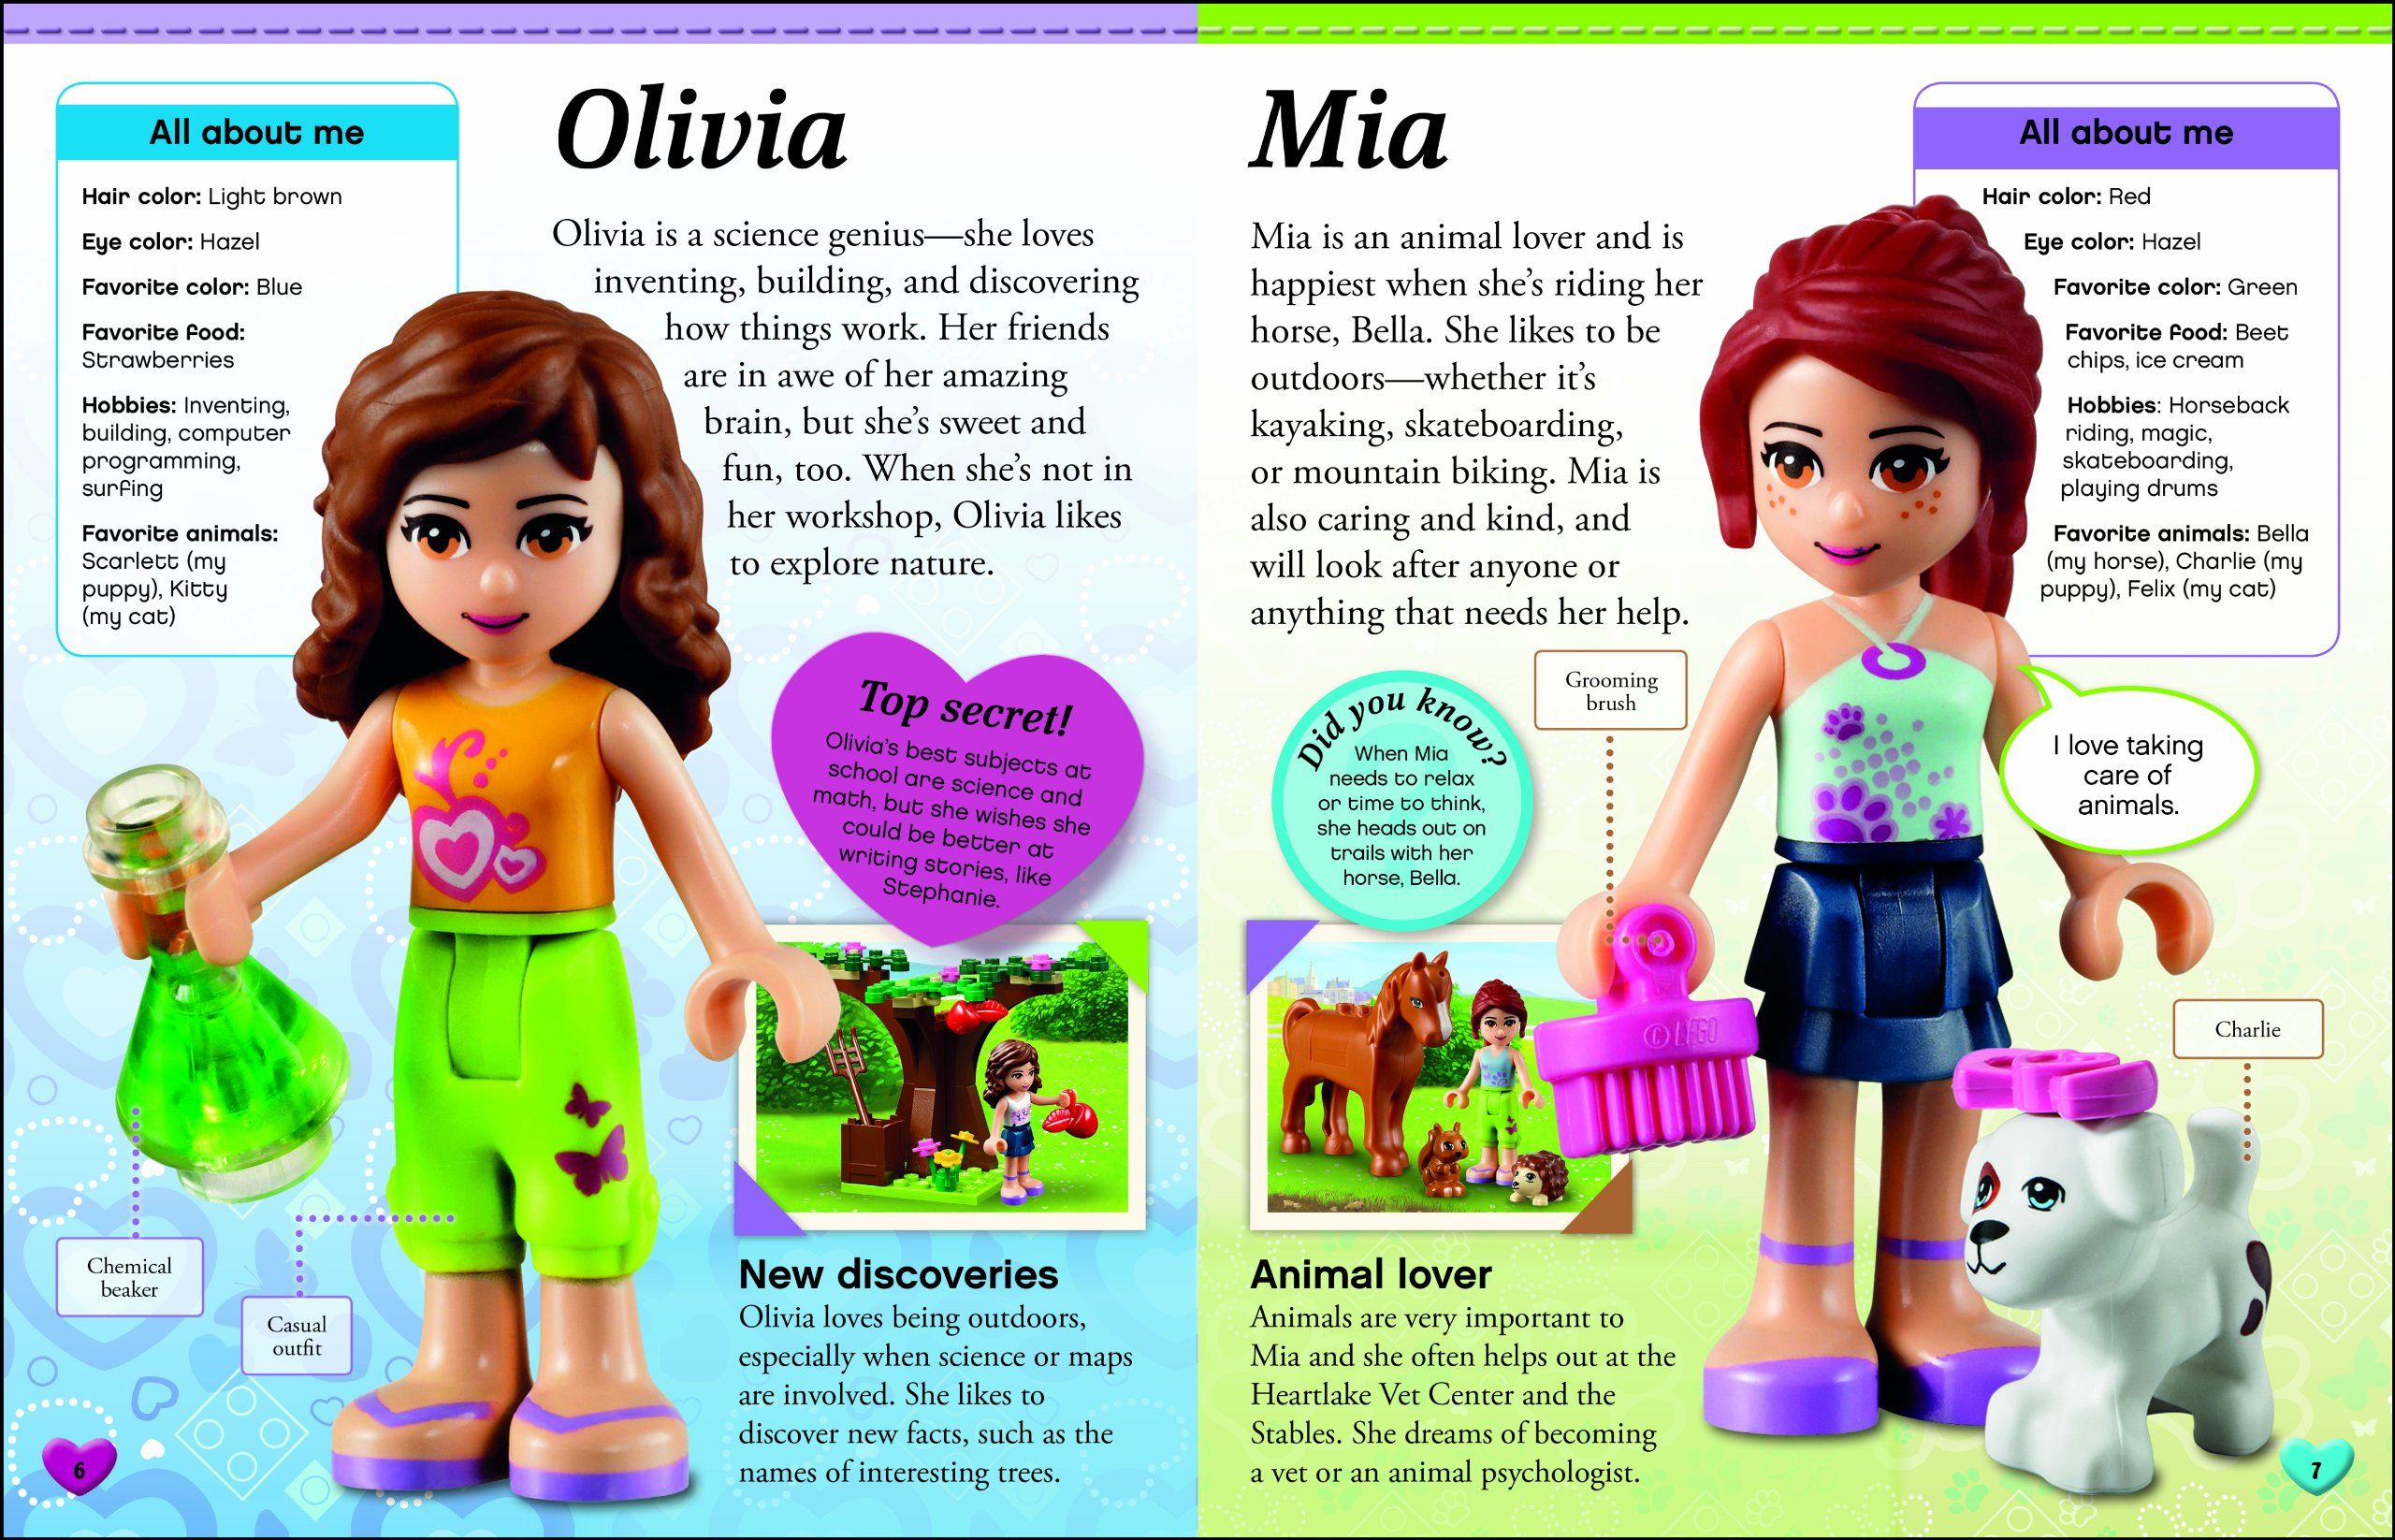 Related Image Friends Characters Lego Friends Lego Characters